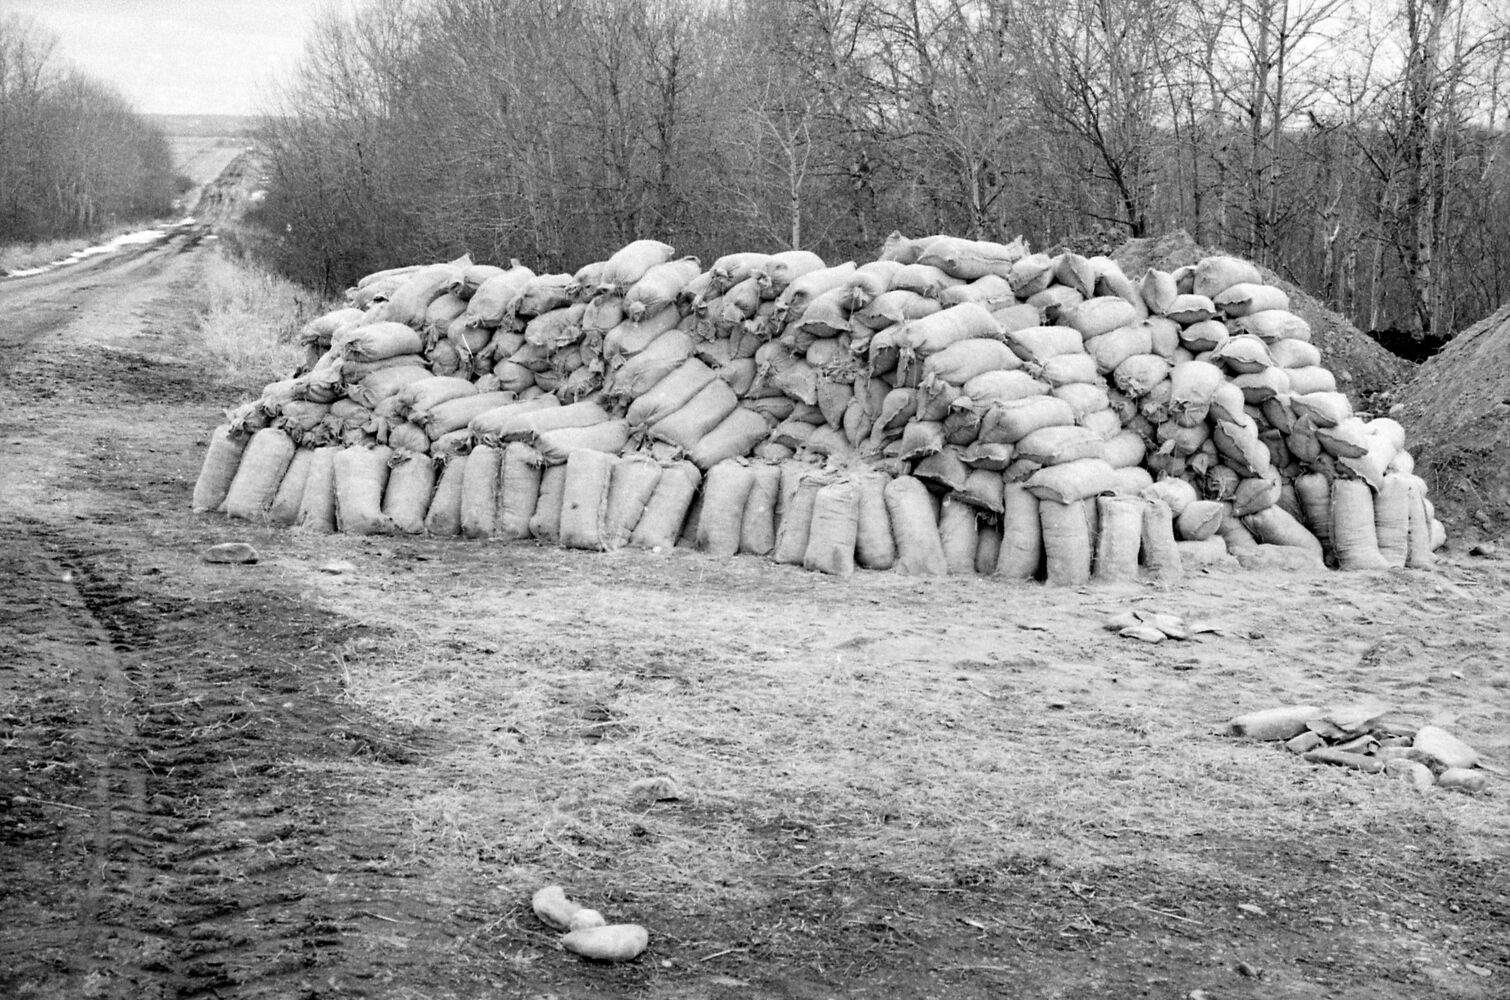 """A sandbag stockpile sits ready for use along a rural Manitoba road. The precise location isn't certain; the image is from a roll of photos identified only as """"Kenton Lenore"""" from April 27, 1995. (Dirk Aberson / Brandon Sun archives)"""